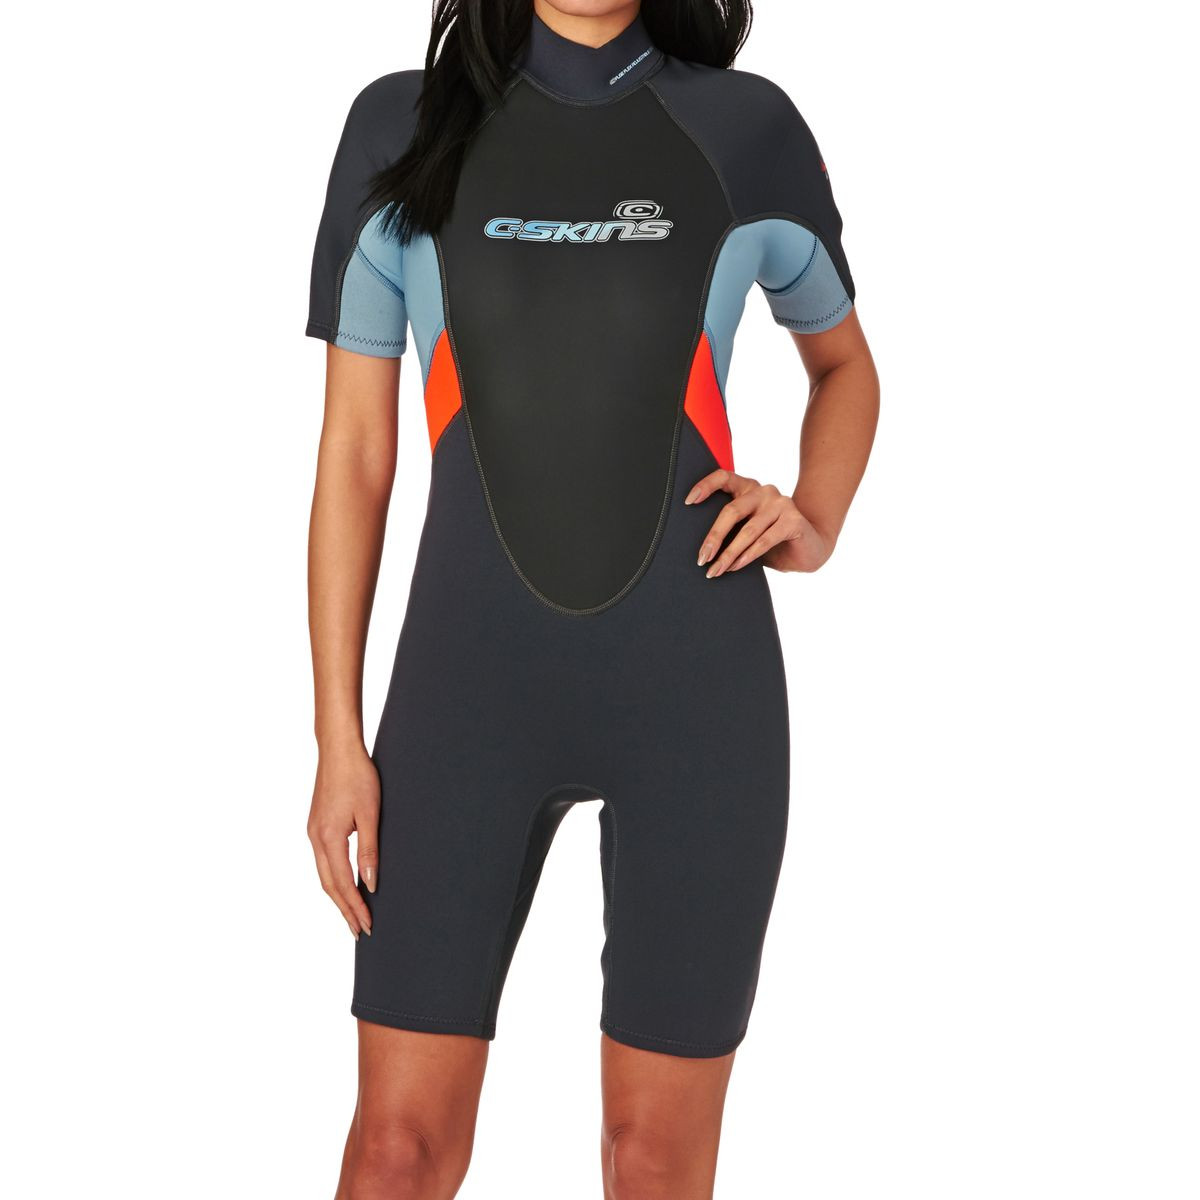 C-Skins Womens Element 3/2mm 2017 Back Zip Flatlock Short Sleeve Shorty Wetsuit - Graphite/ Coral/ Cold Blue